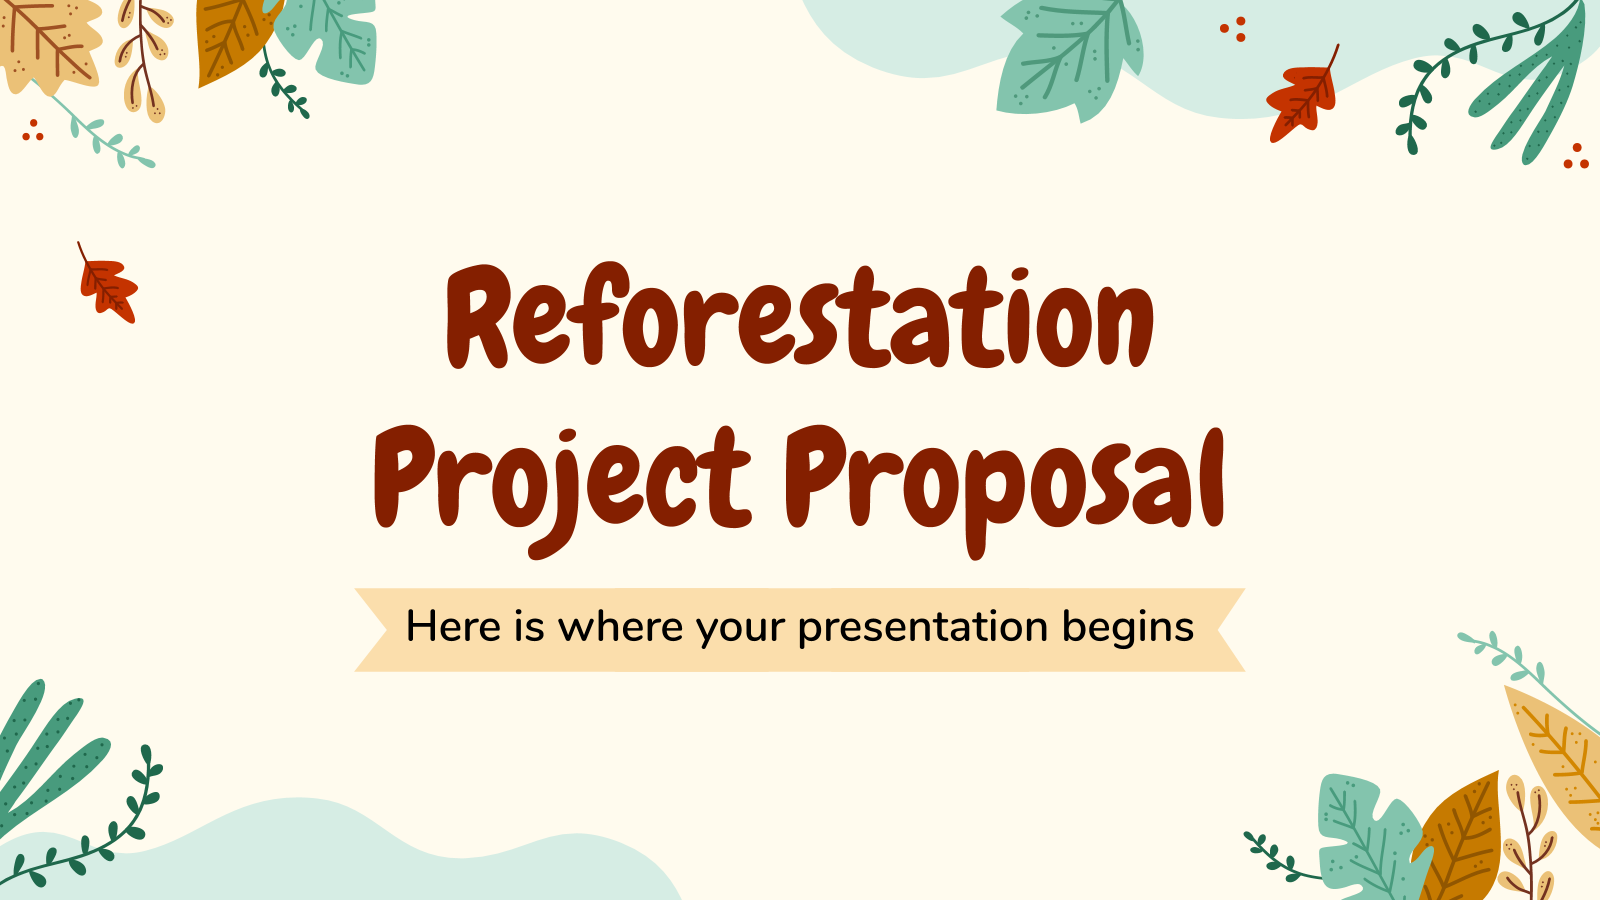 Reforestation Project Proposal presentation template